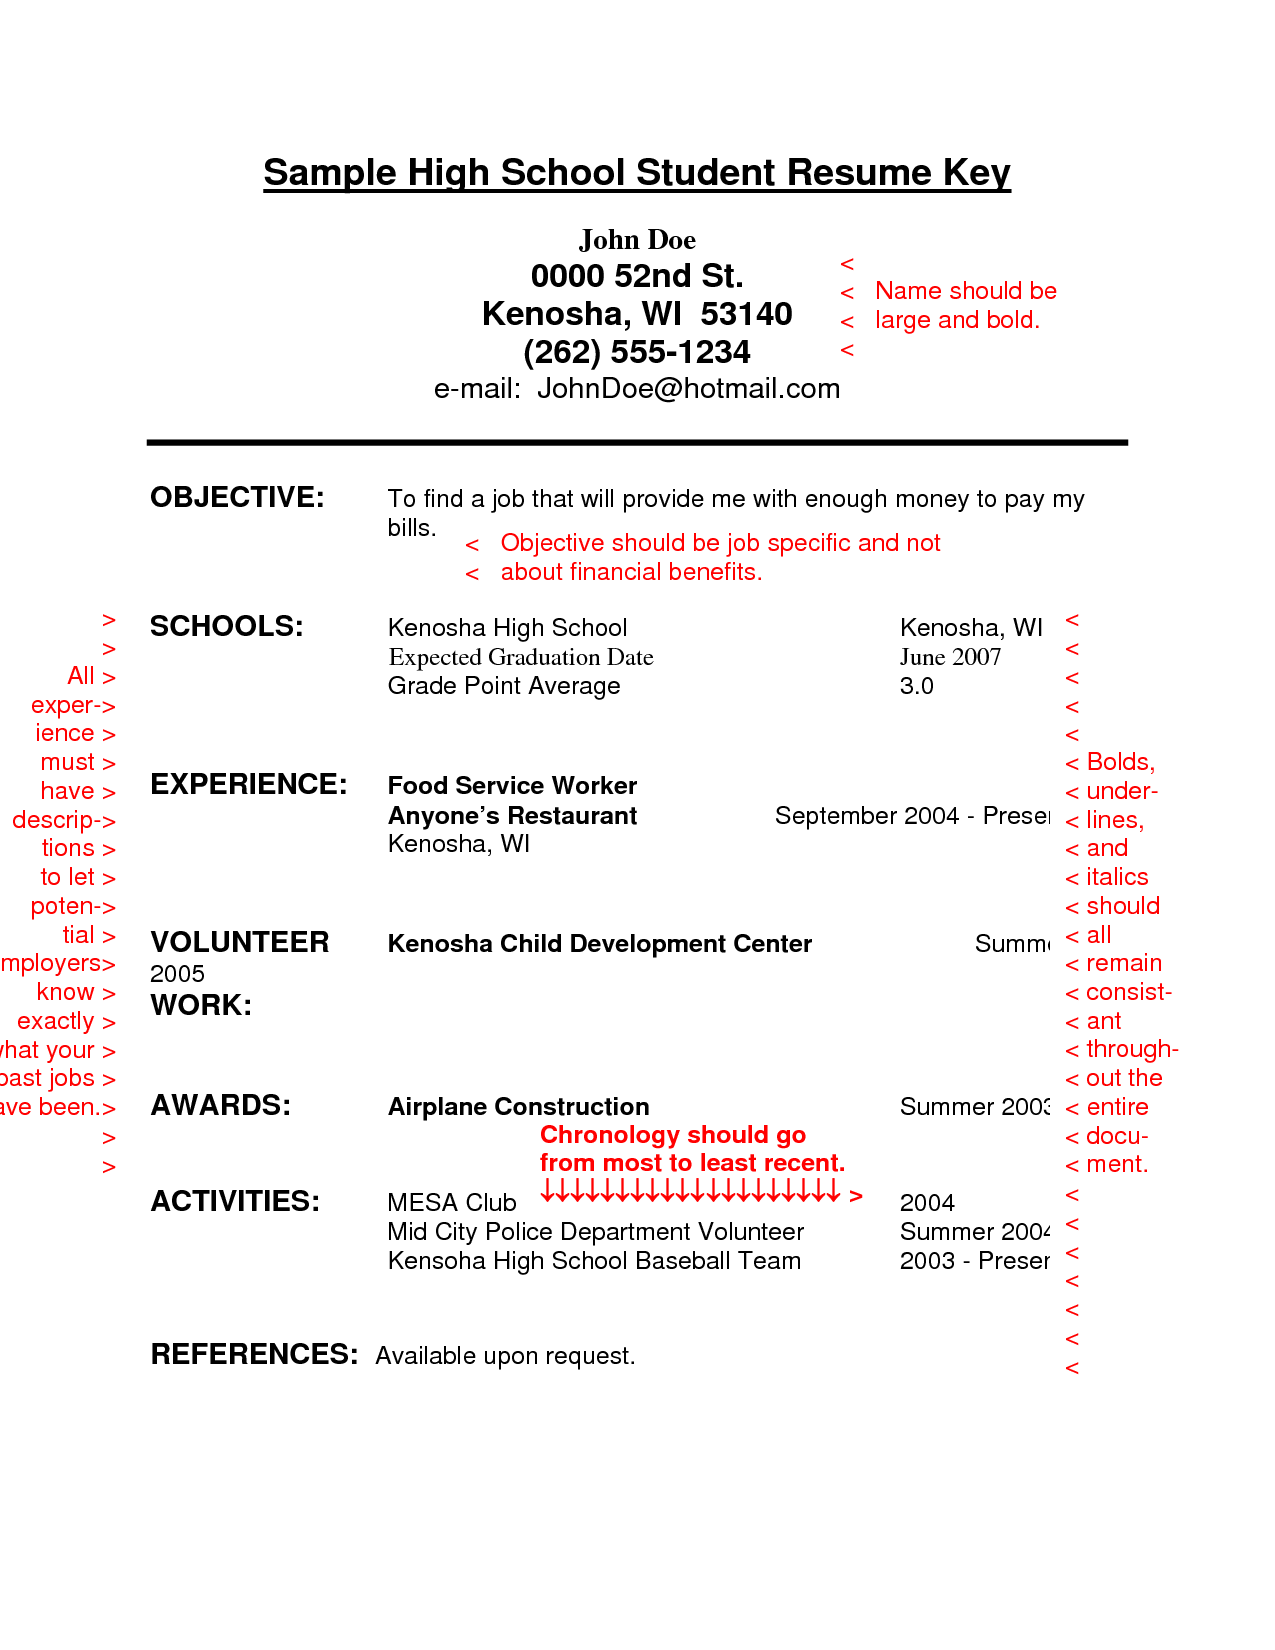 Resumes For High School Students Resume Sample For High School Students With No Experience  Http